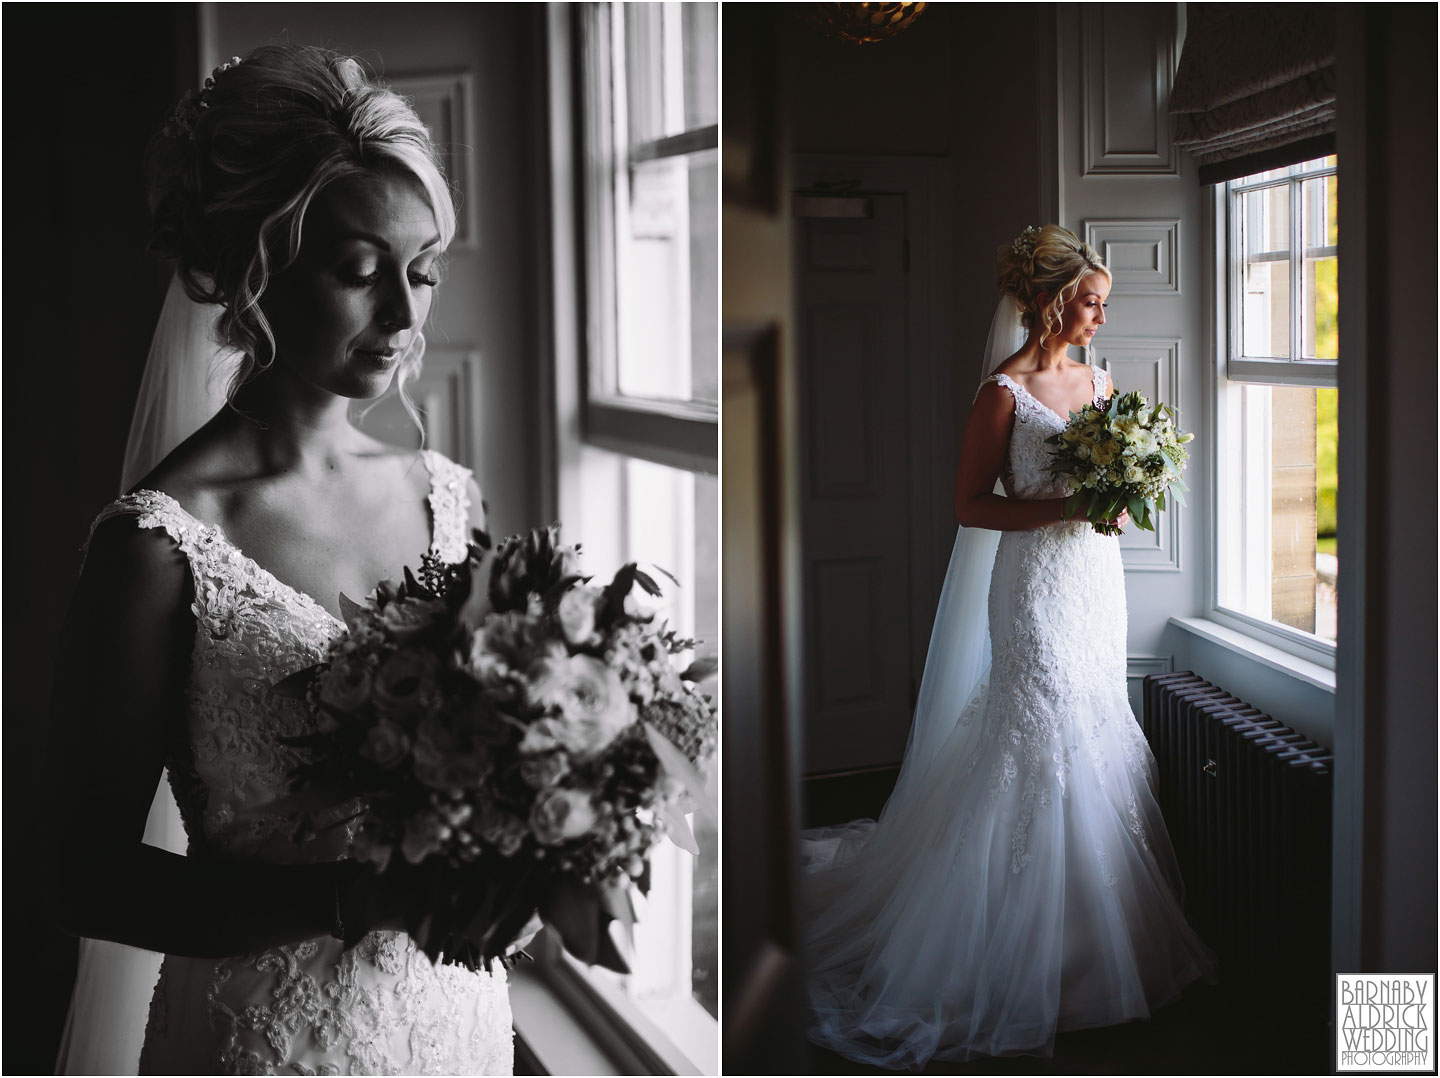 Beautiful bridal window photo at Saltmarshe Hall Wedding Photos, Wedding photography at Saltmarshe Hall, East Yorkshire Wedding Photos